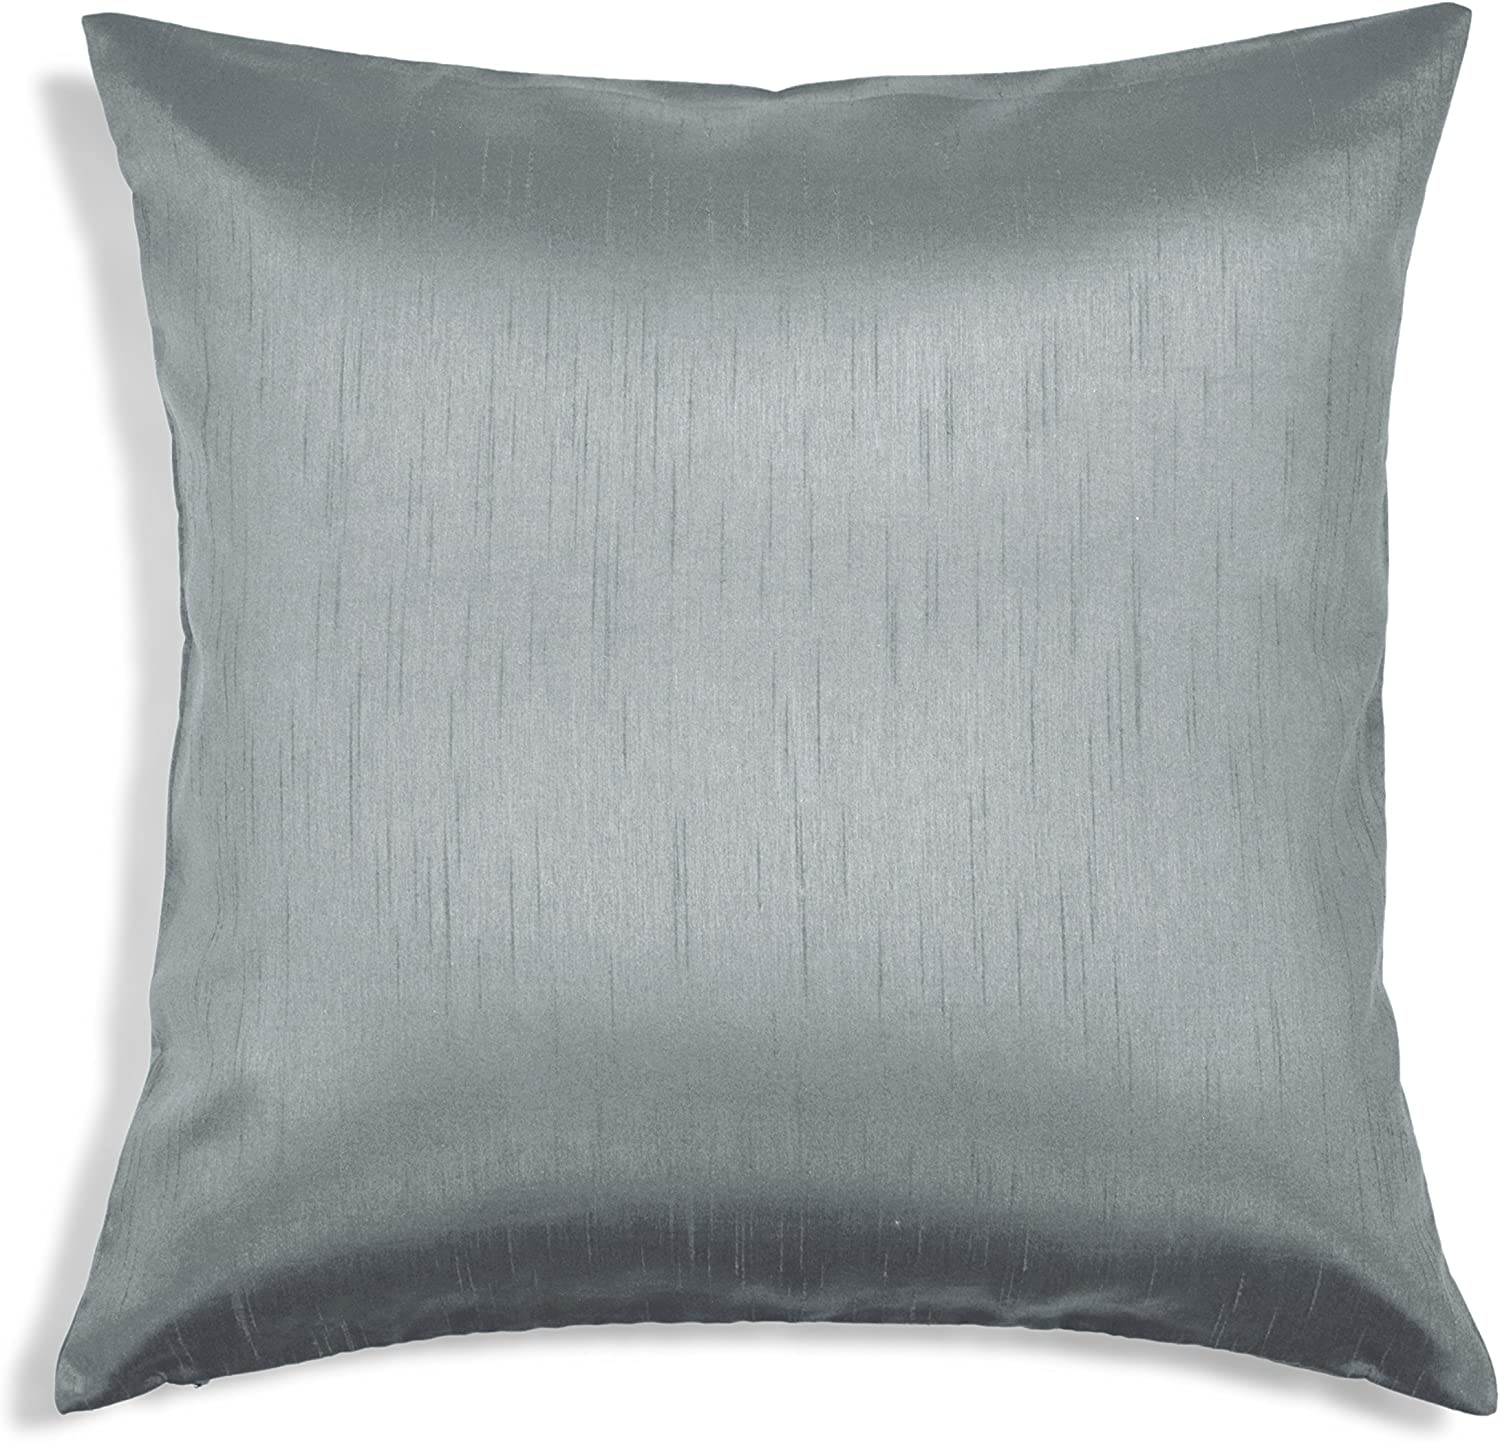 Aiking Home Solid Faux Silk Euro Sham Pillow Cover Zipper Closure 26 By 26 Inches Charcoal Home Kitchen